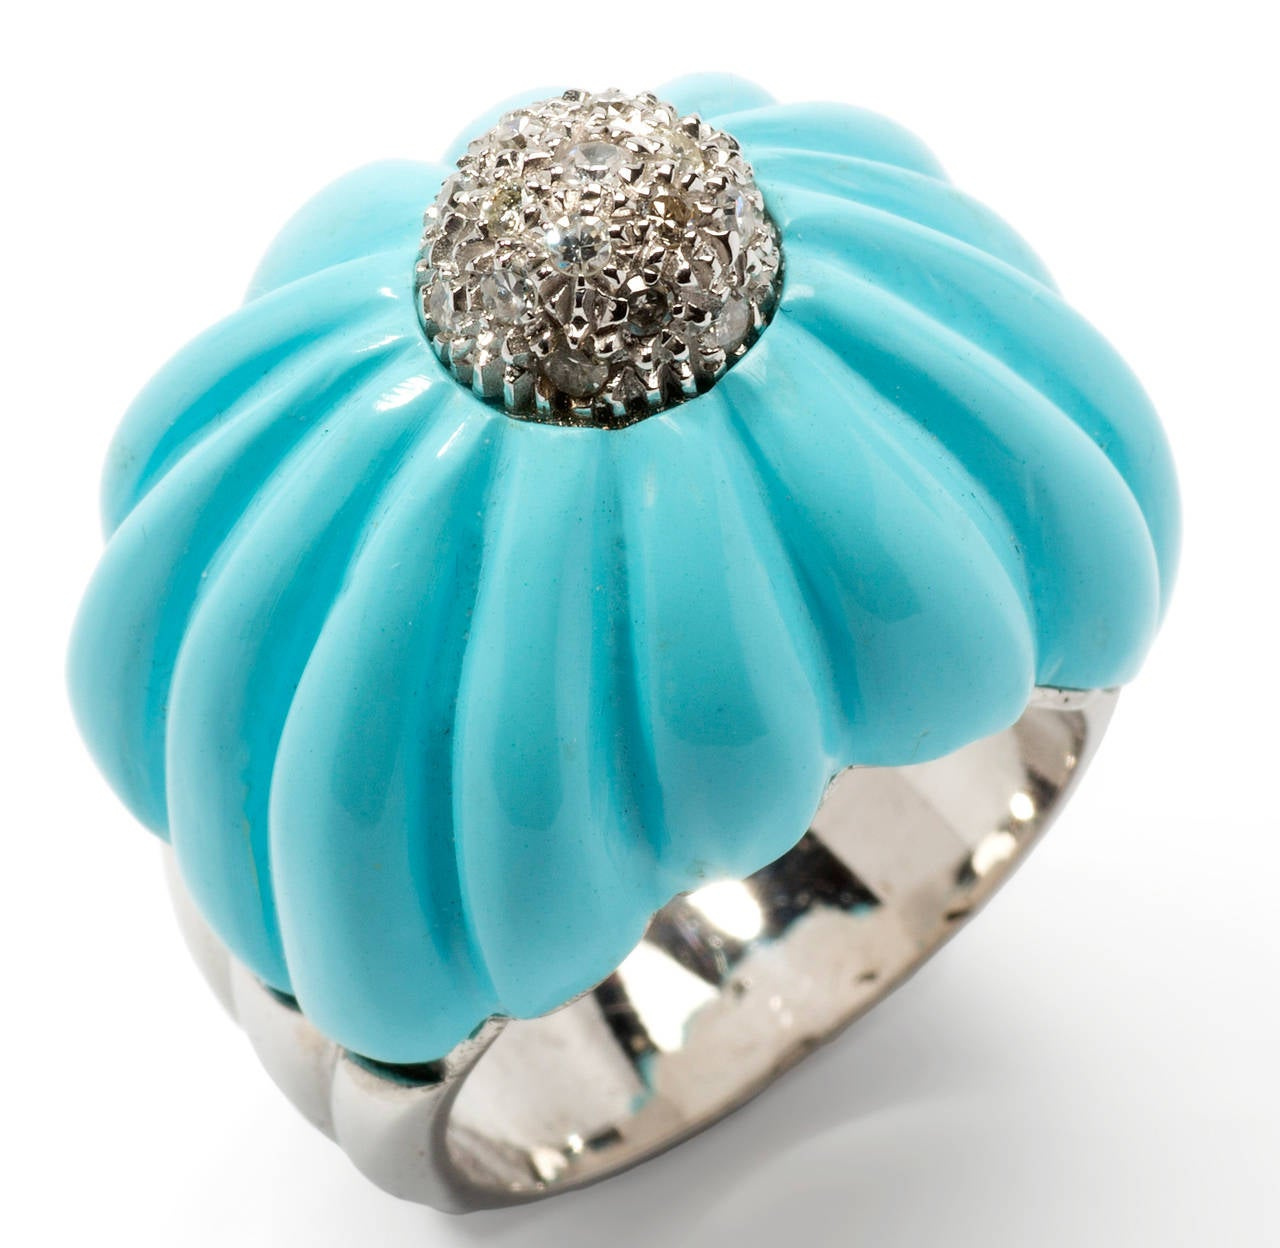 Bombe italian design, 1970's. Elevated front, carved turquoise accented in the centre by 20 swiss-cut diamonds weighing approximately 0,40 carats SI, wesselton. Mounted in 18K white gold. Marked 750 for 18K gold.  Total weight: 18,81 g. Height of